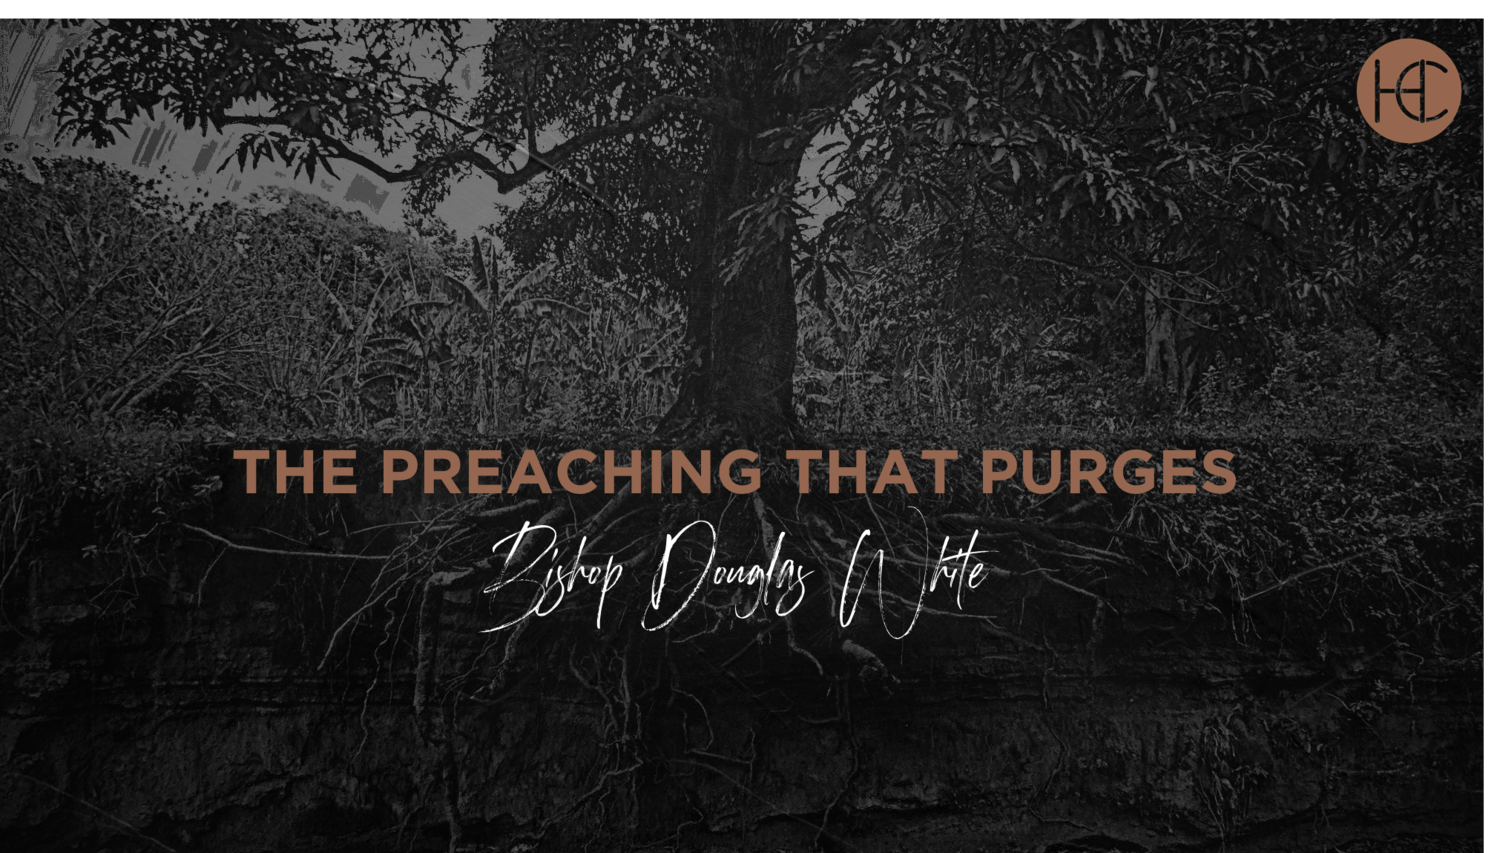 The Preaching that Purges - Bishop D.D. White